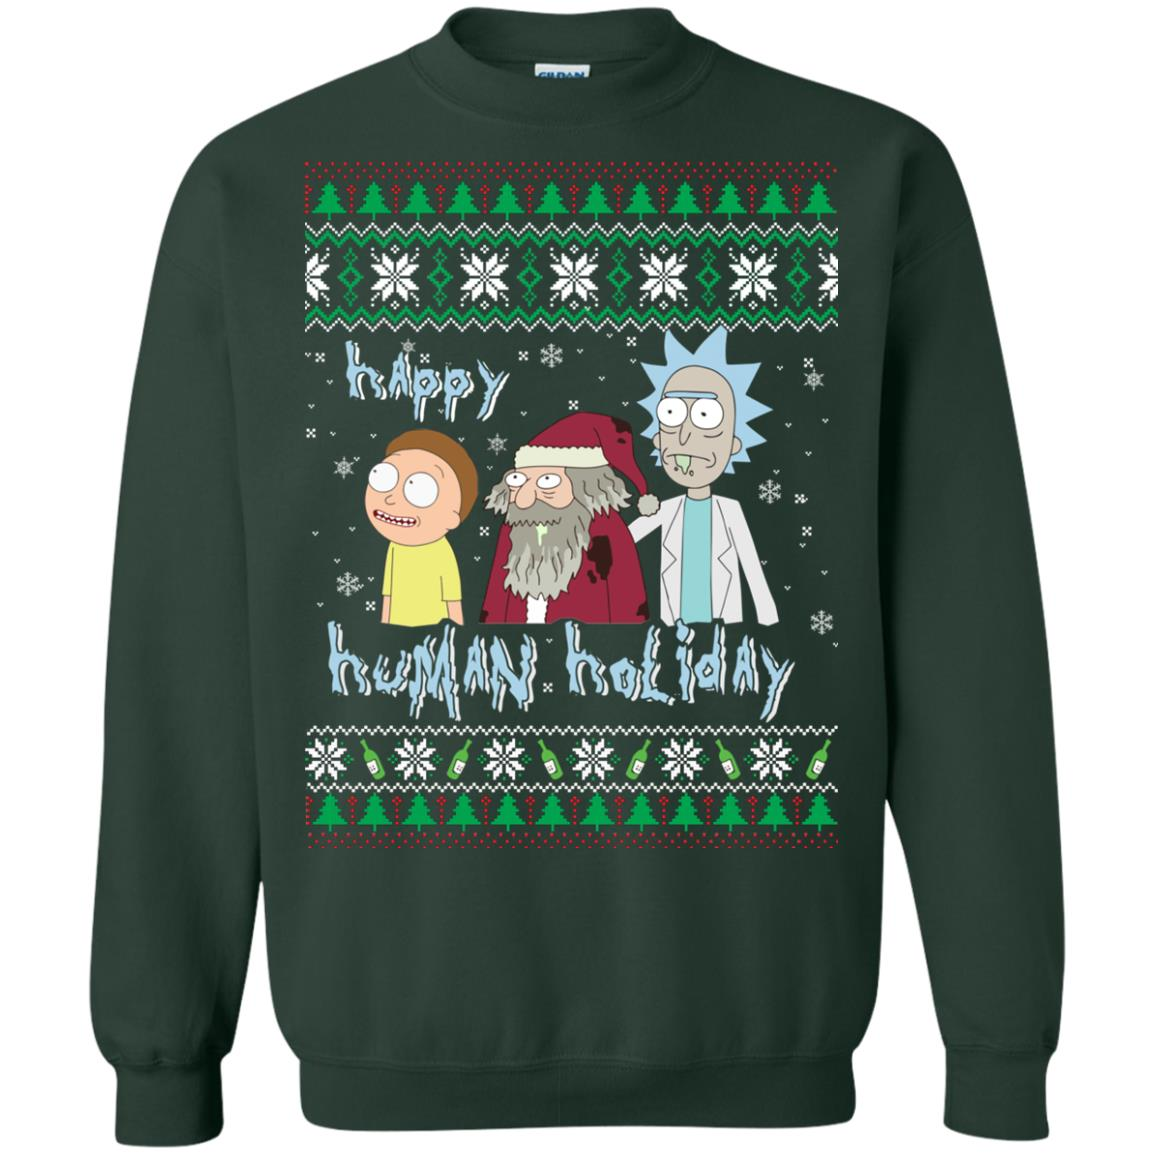 image 454px Rick and Morty: Happy Human Holiday Christmas Sweater